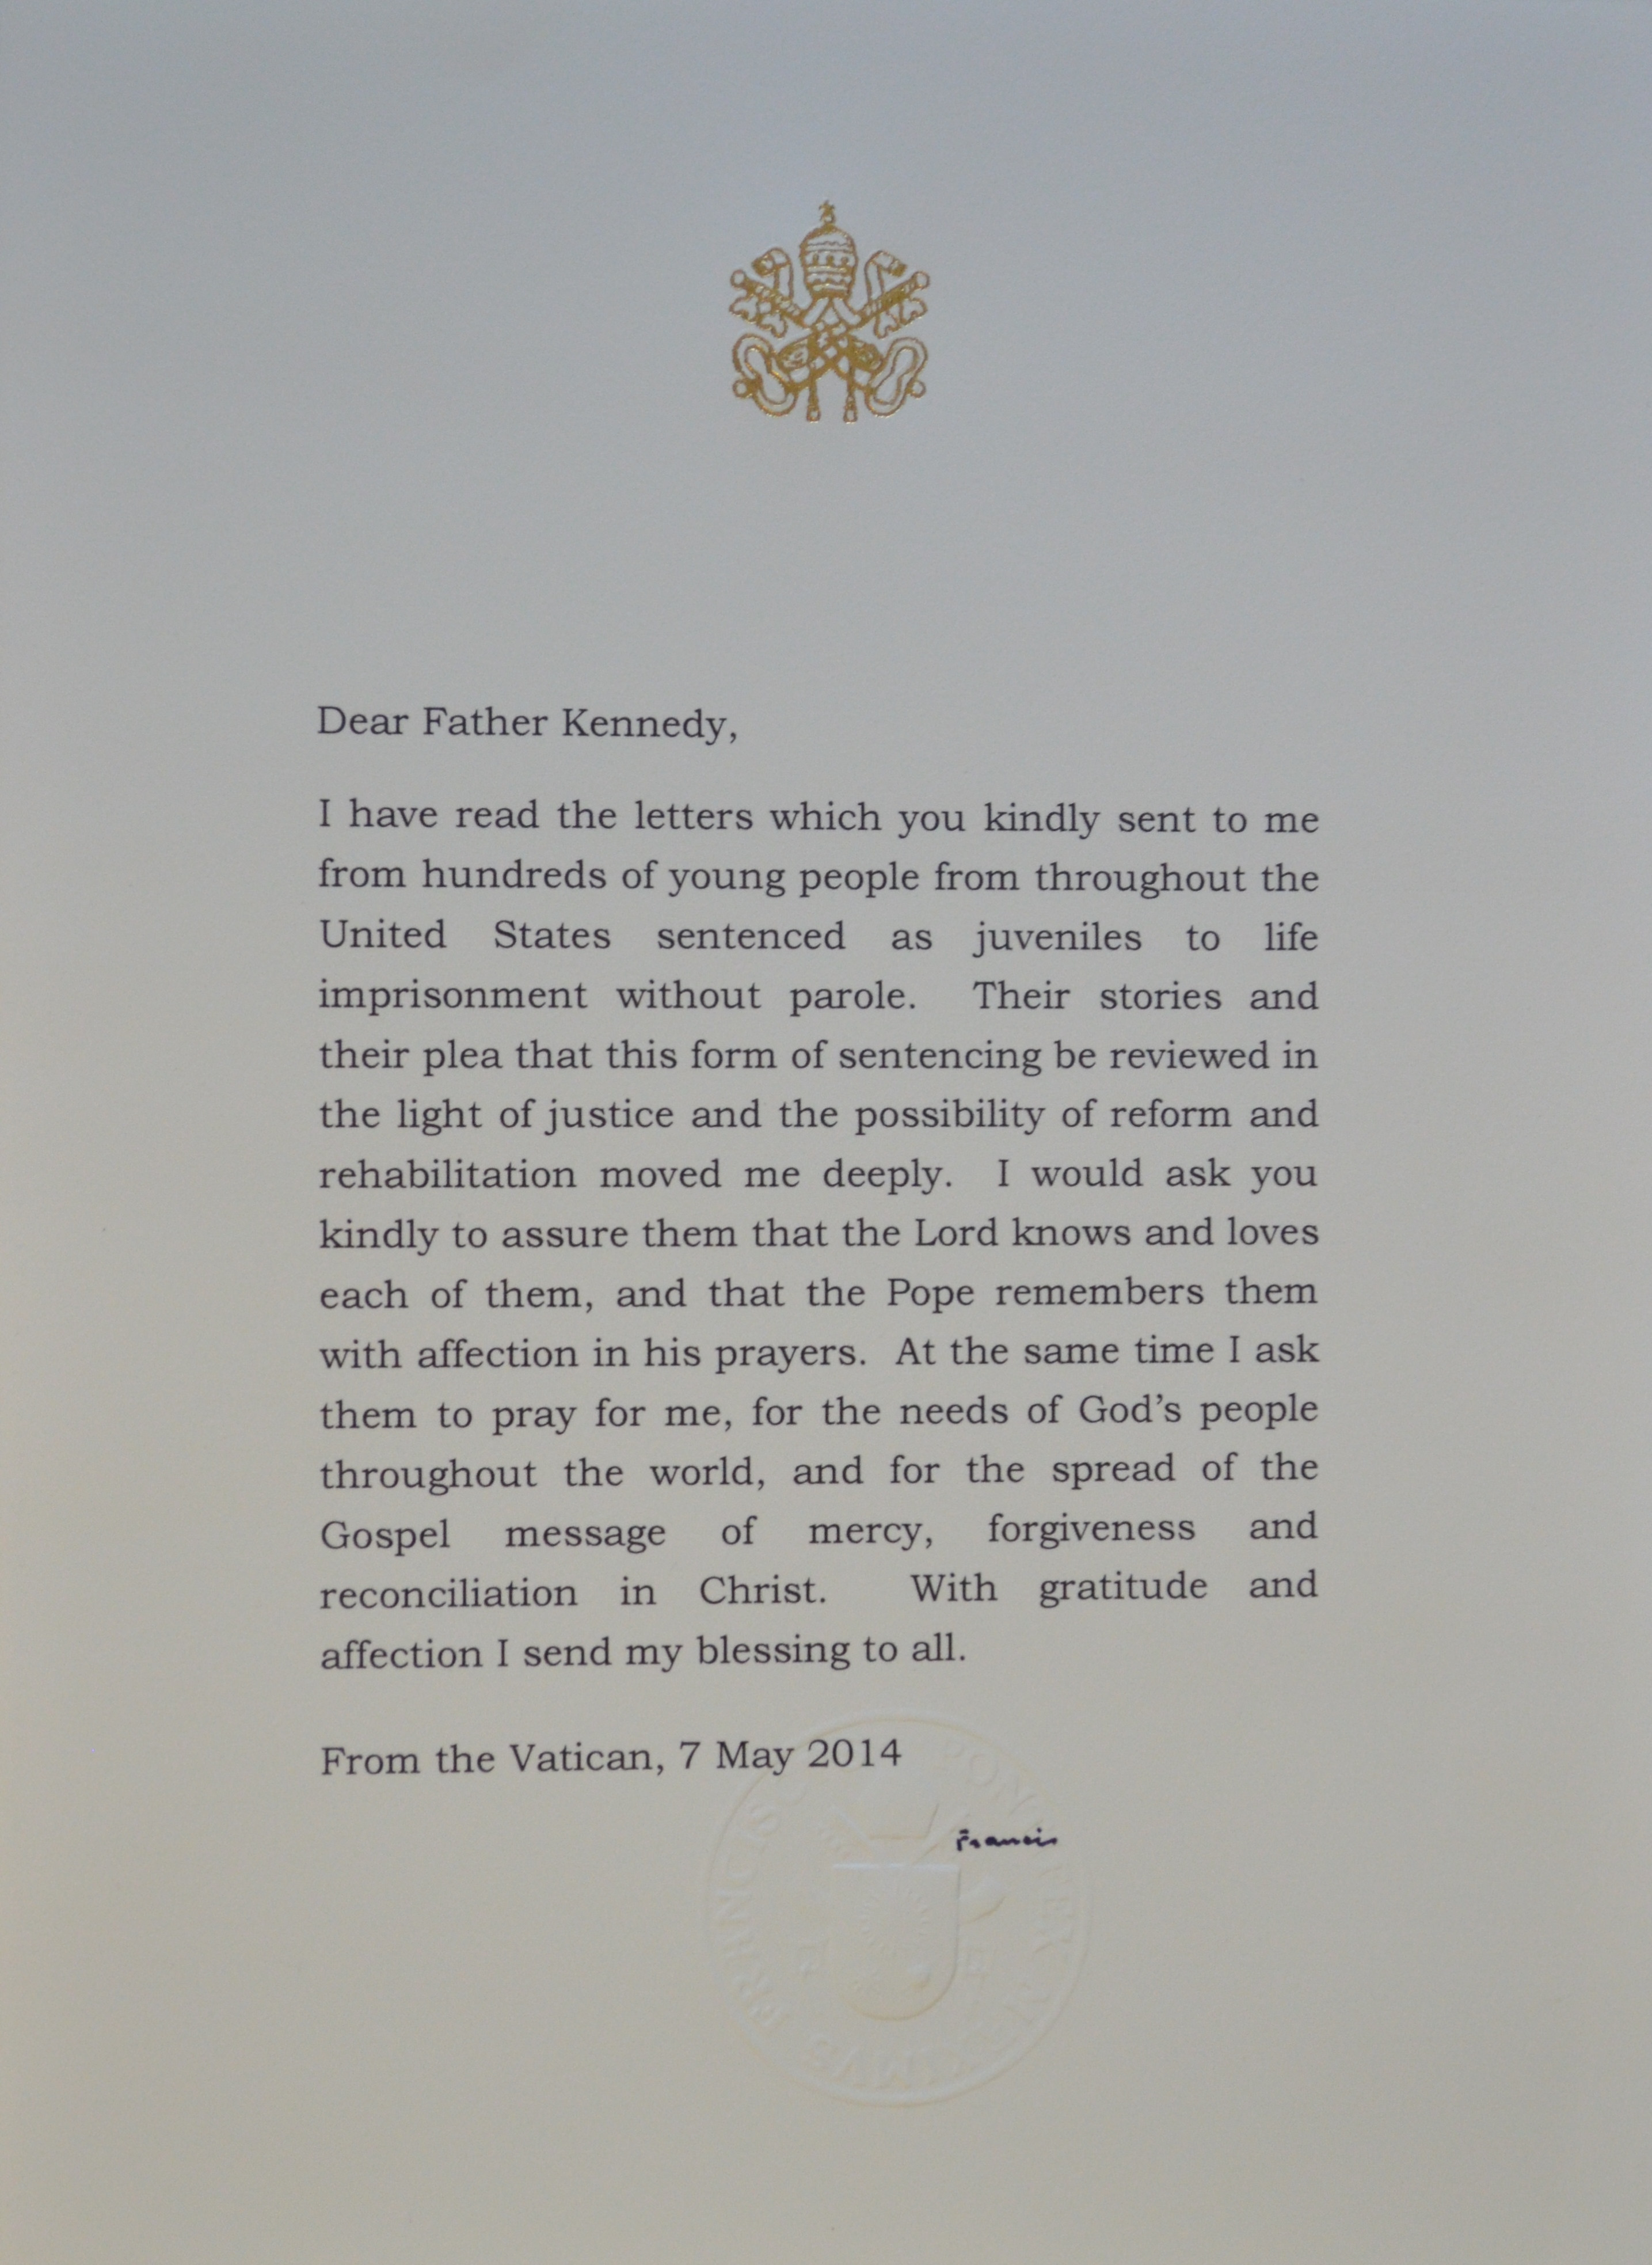 A Letter from Pope Francis | America Magazine